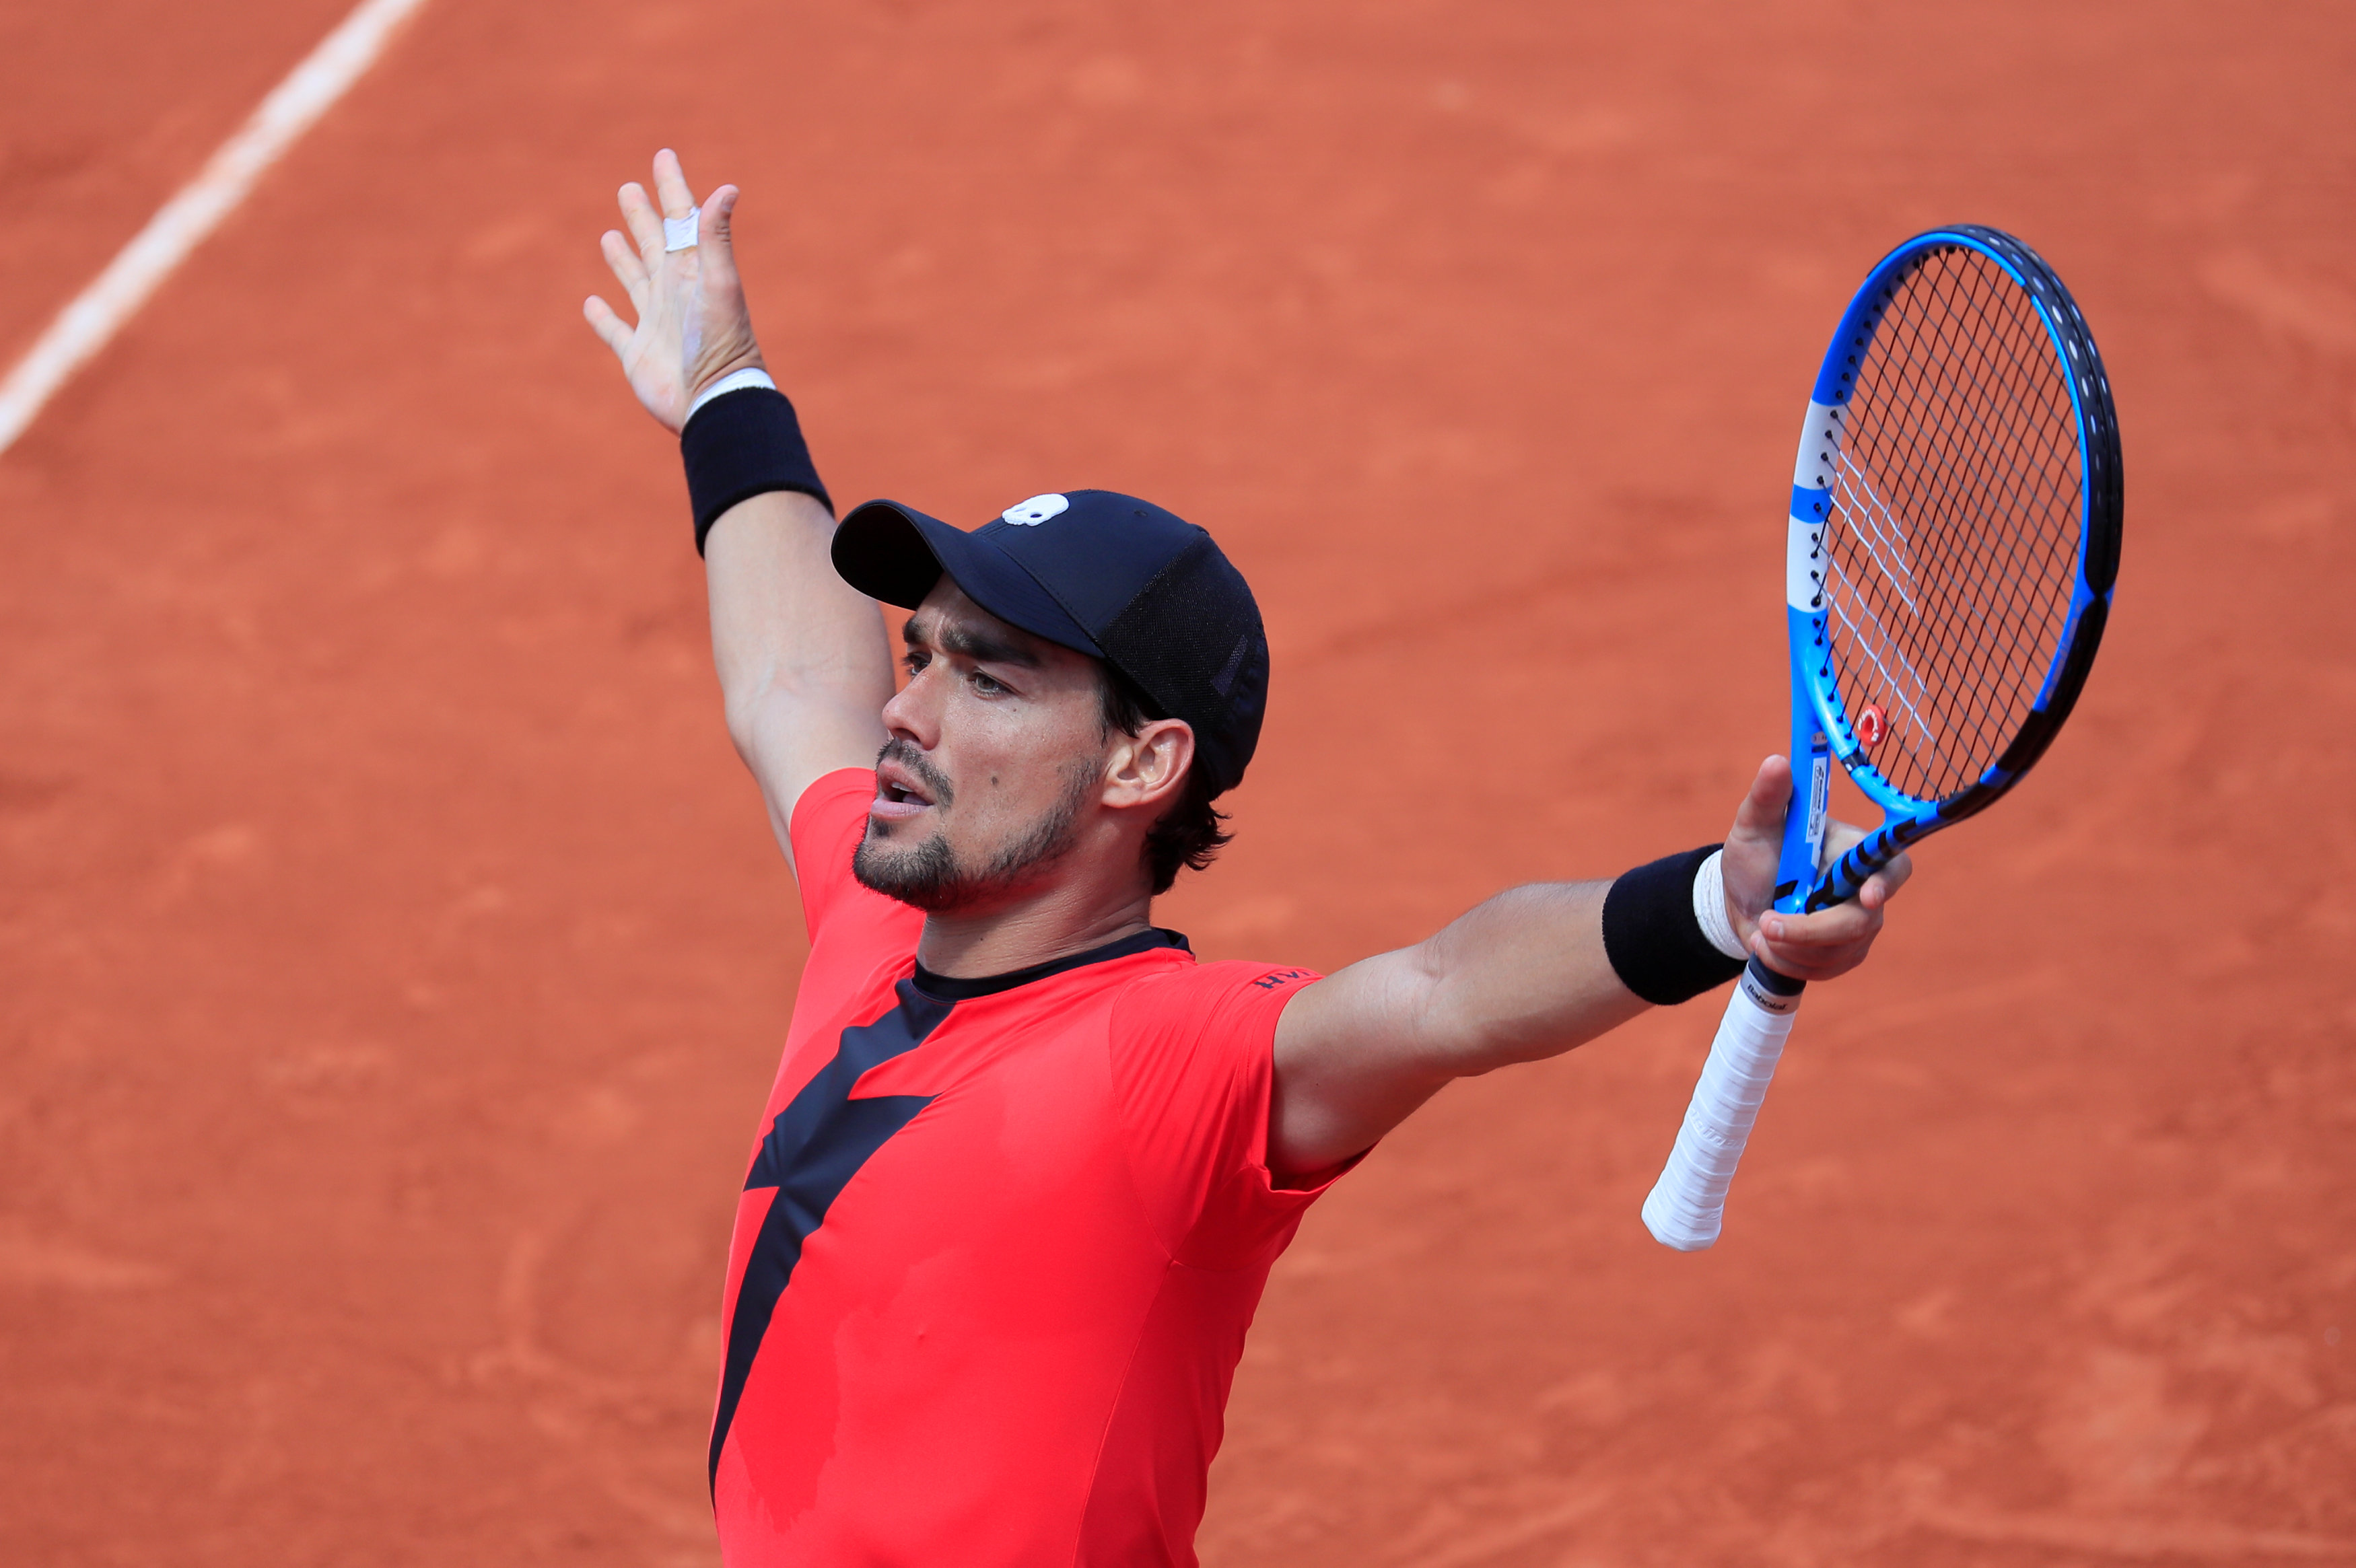 French Open: Fognini outlasts Edmund to reach last 16